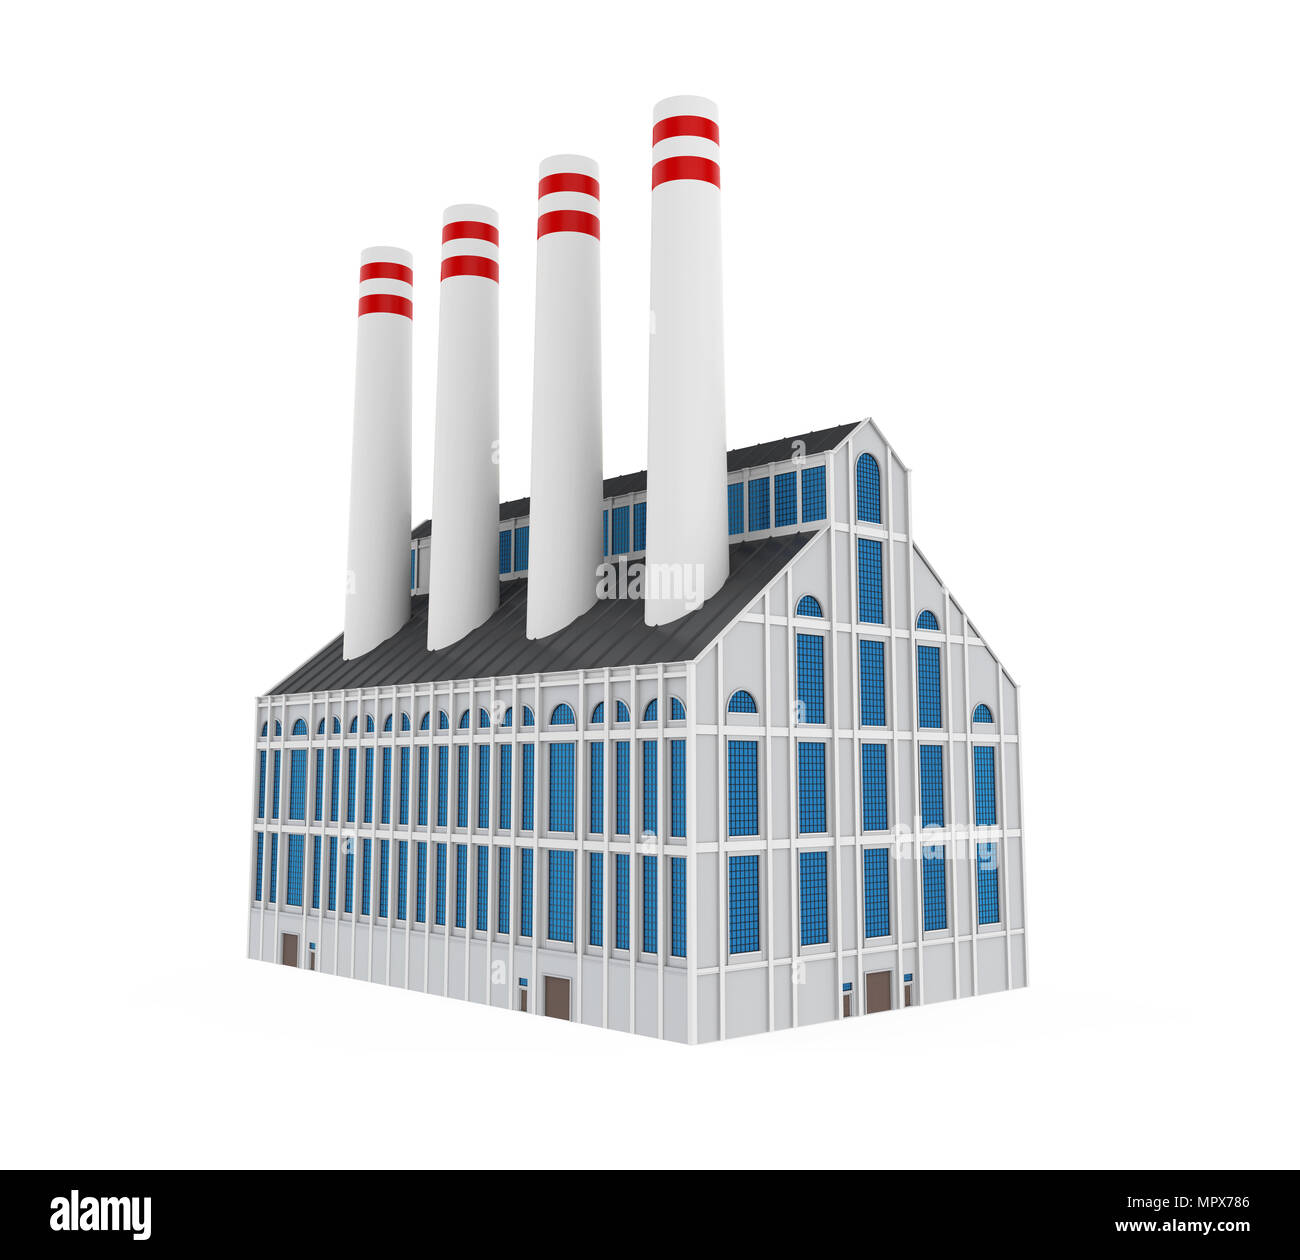 Industrial Factory Building Isolated - Stock Image